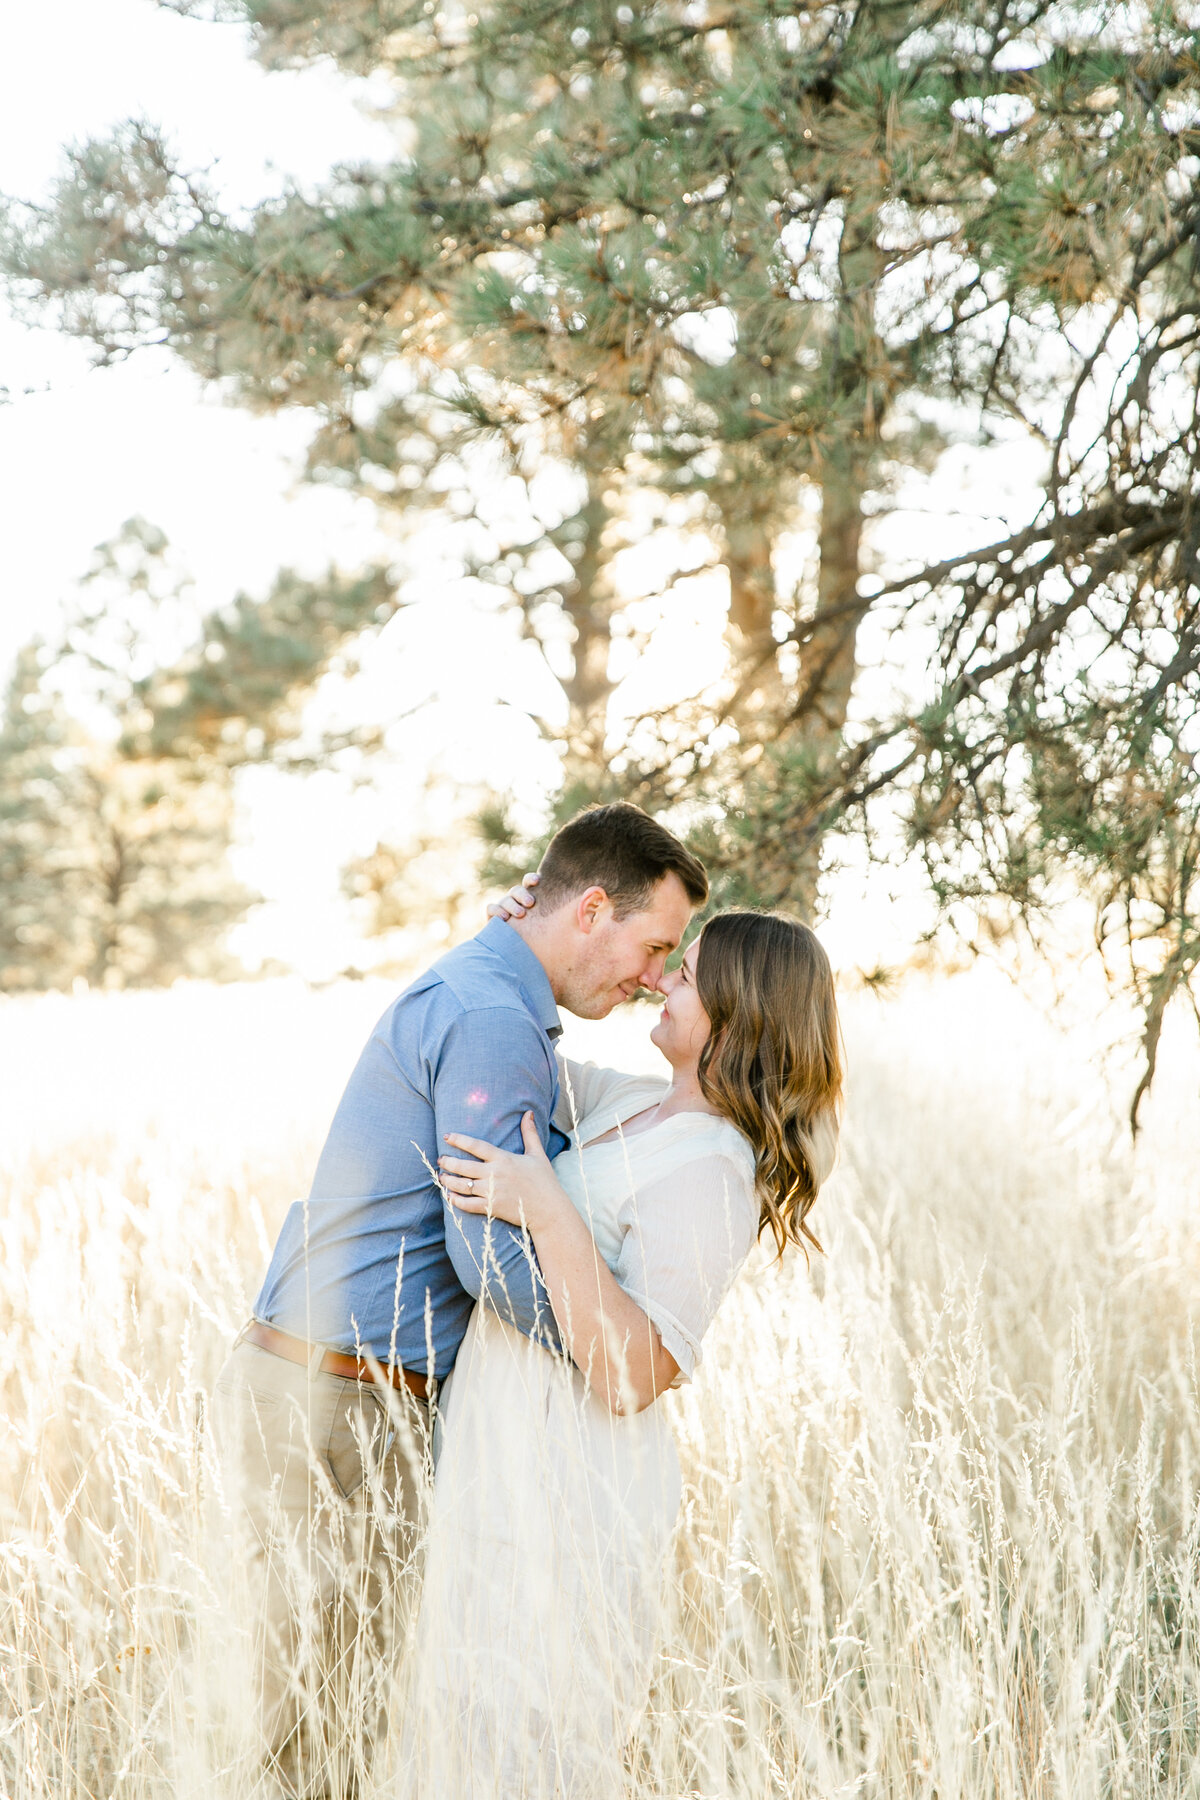 Karlie Colleen Photography - Flagstaff Arizona Engagement Photographer - Britt & Josh -143